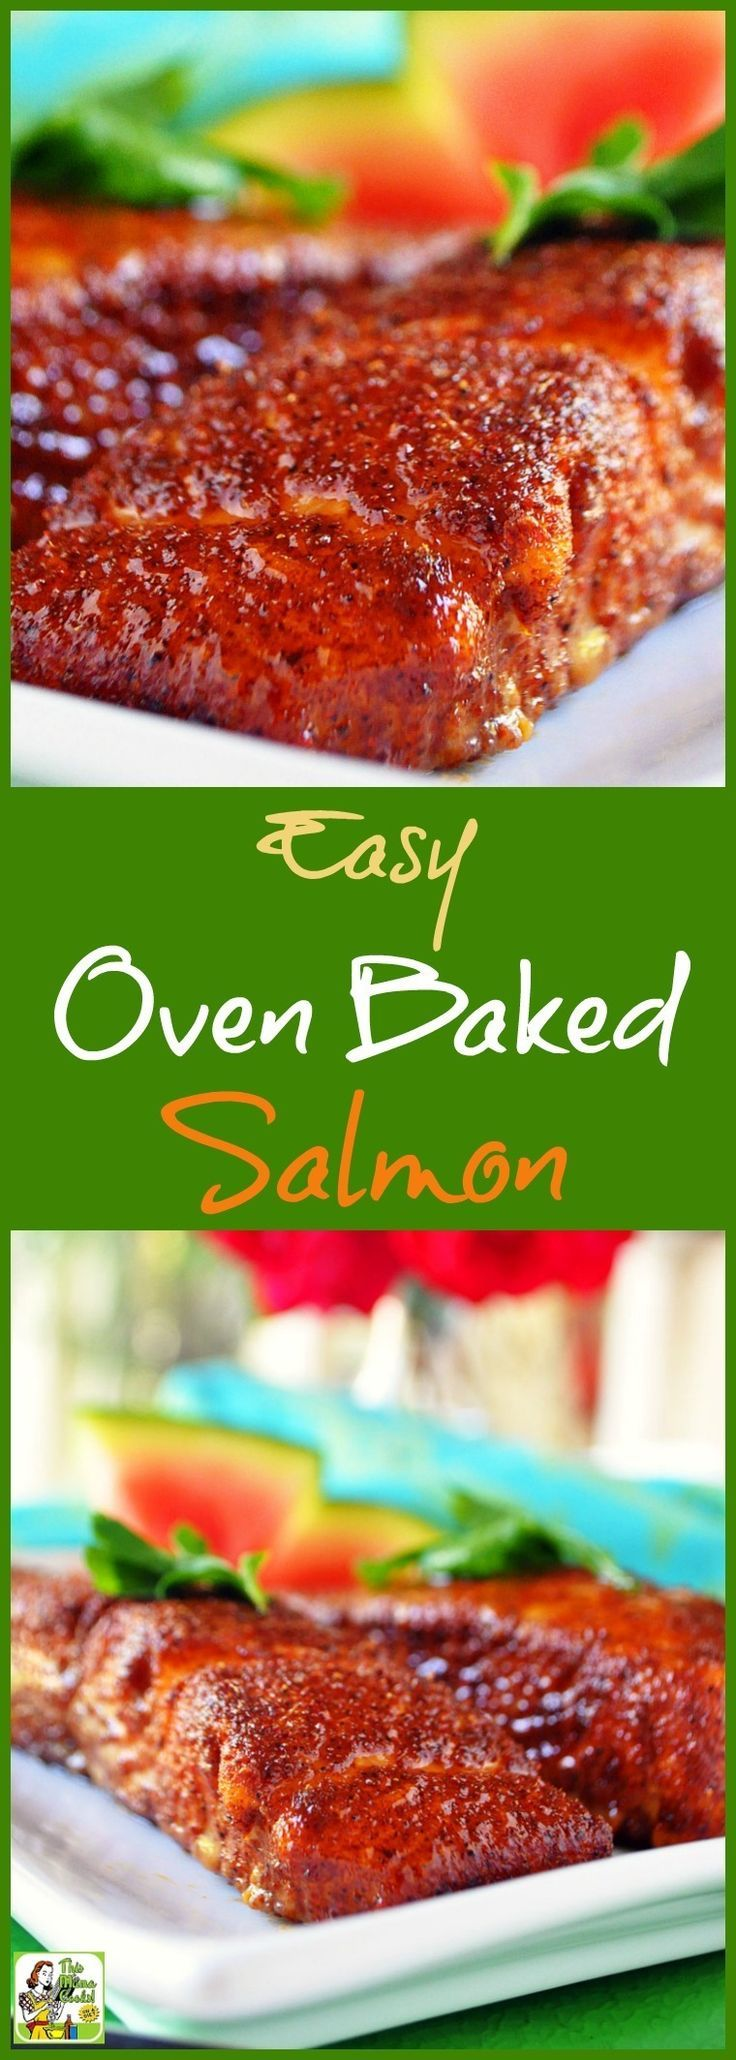 17 best ideas about baked salmon recipes on pinterest salmon recipes healthy salmon recipes. Black Bedroom Furniture Sets. Home Design Ideas